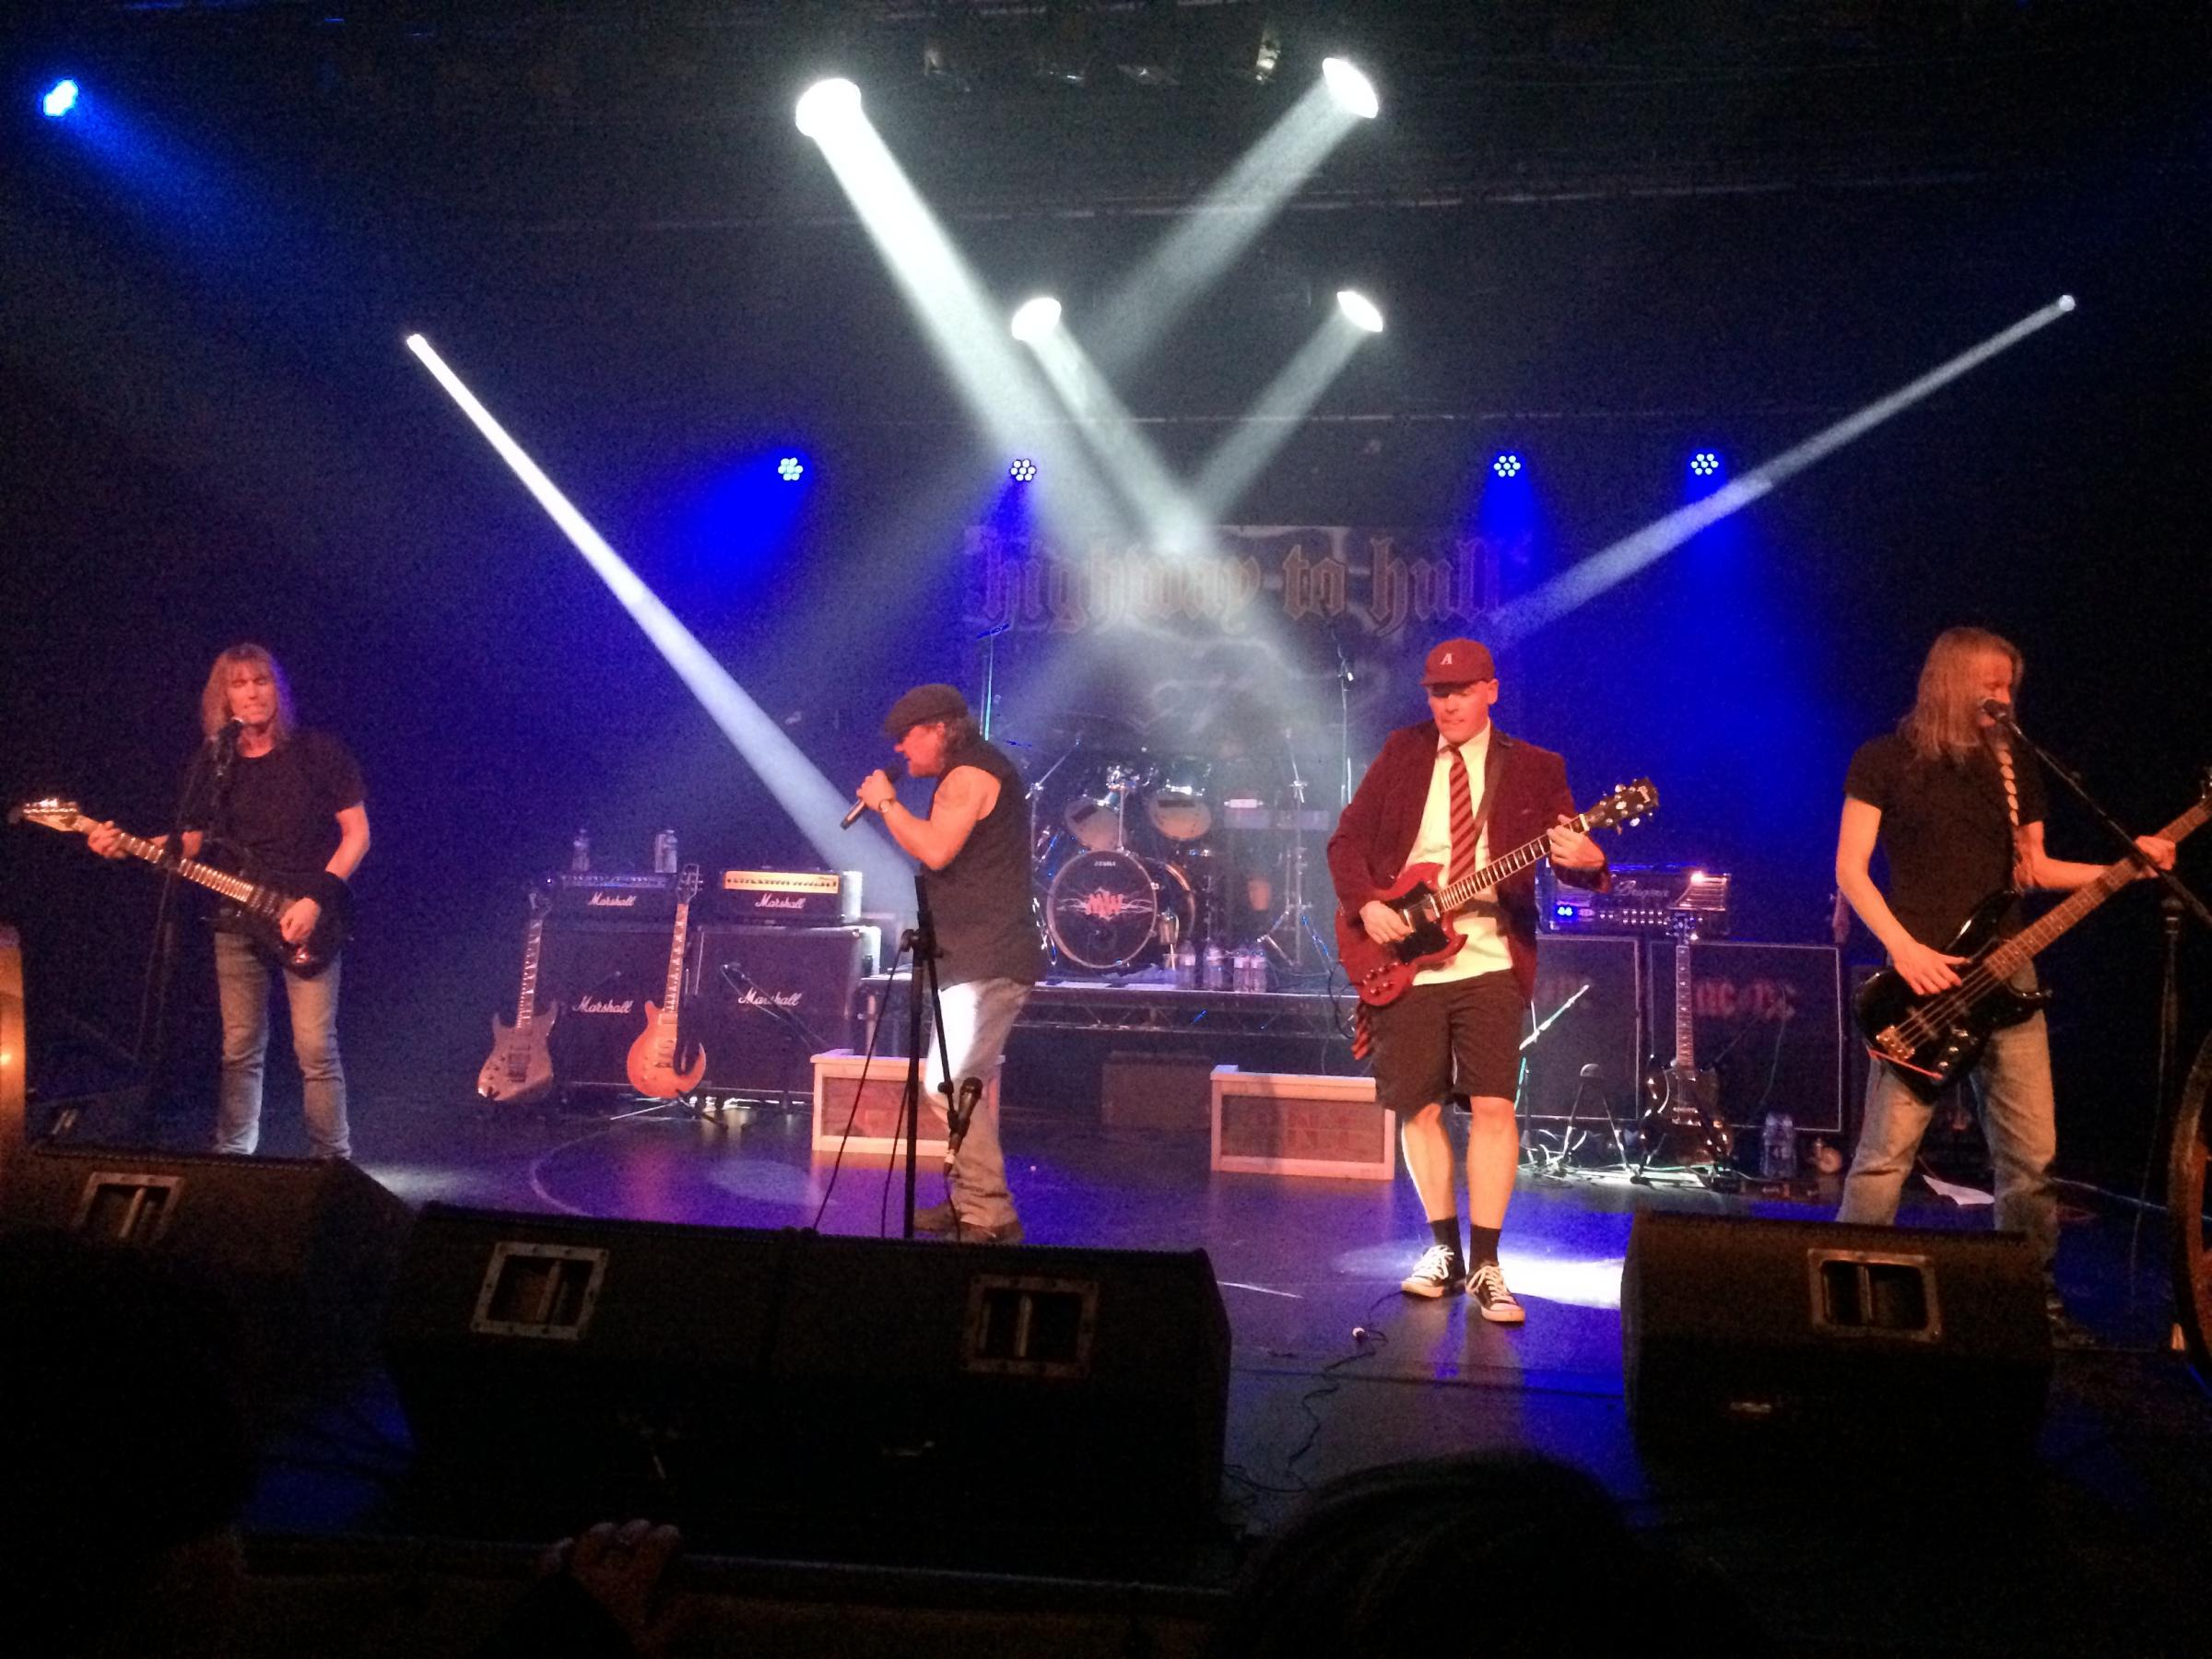 Highway to Hull - Yorkshire's answer to AC/DC - hits the stage in Keighley